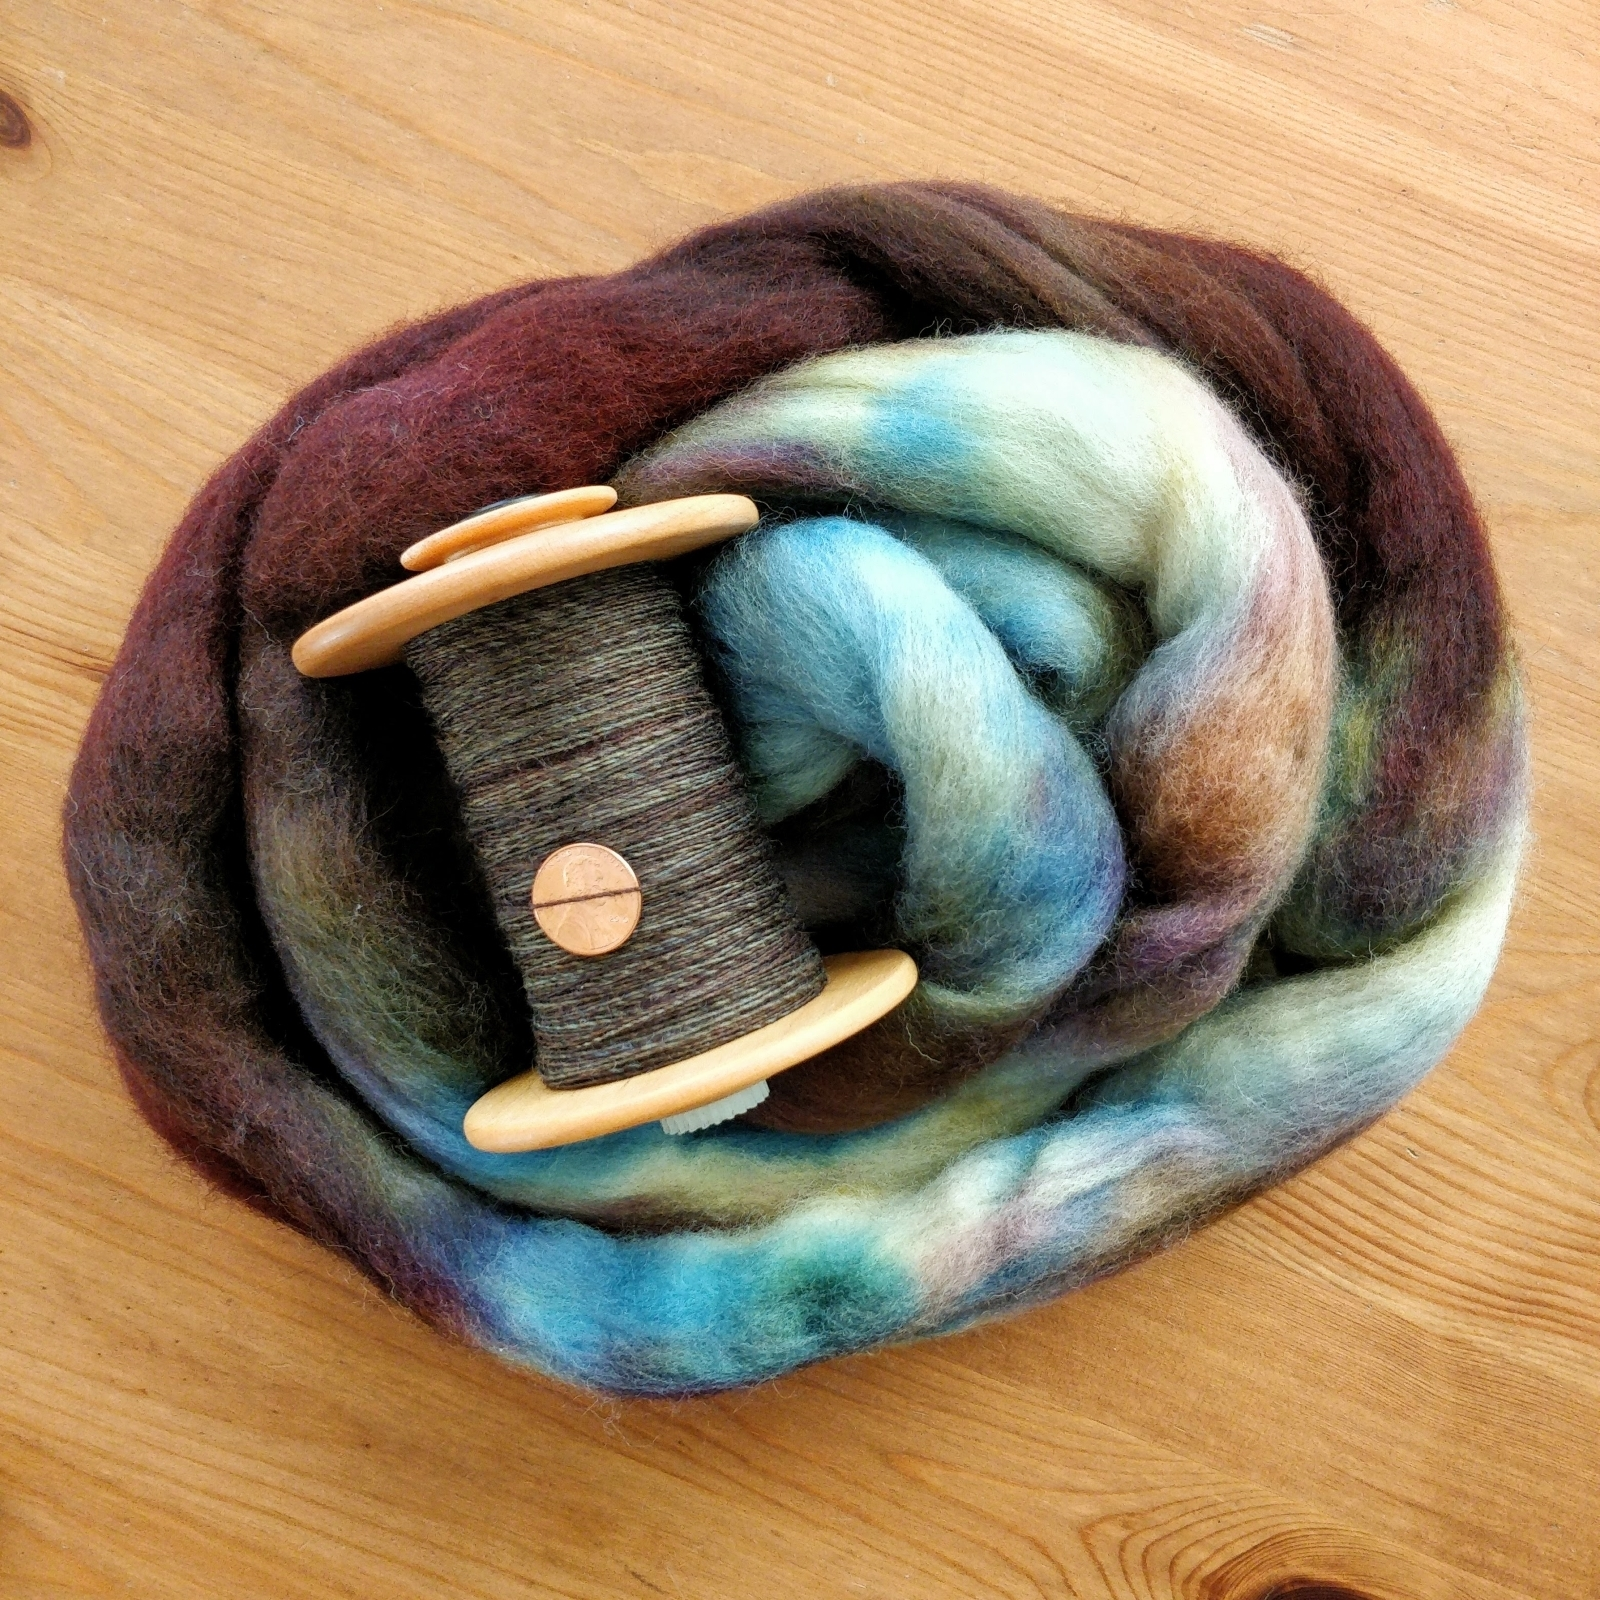 A bobbin of fine singles with a penny for scale rests on a nest of unspun wool.